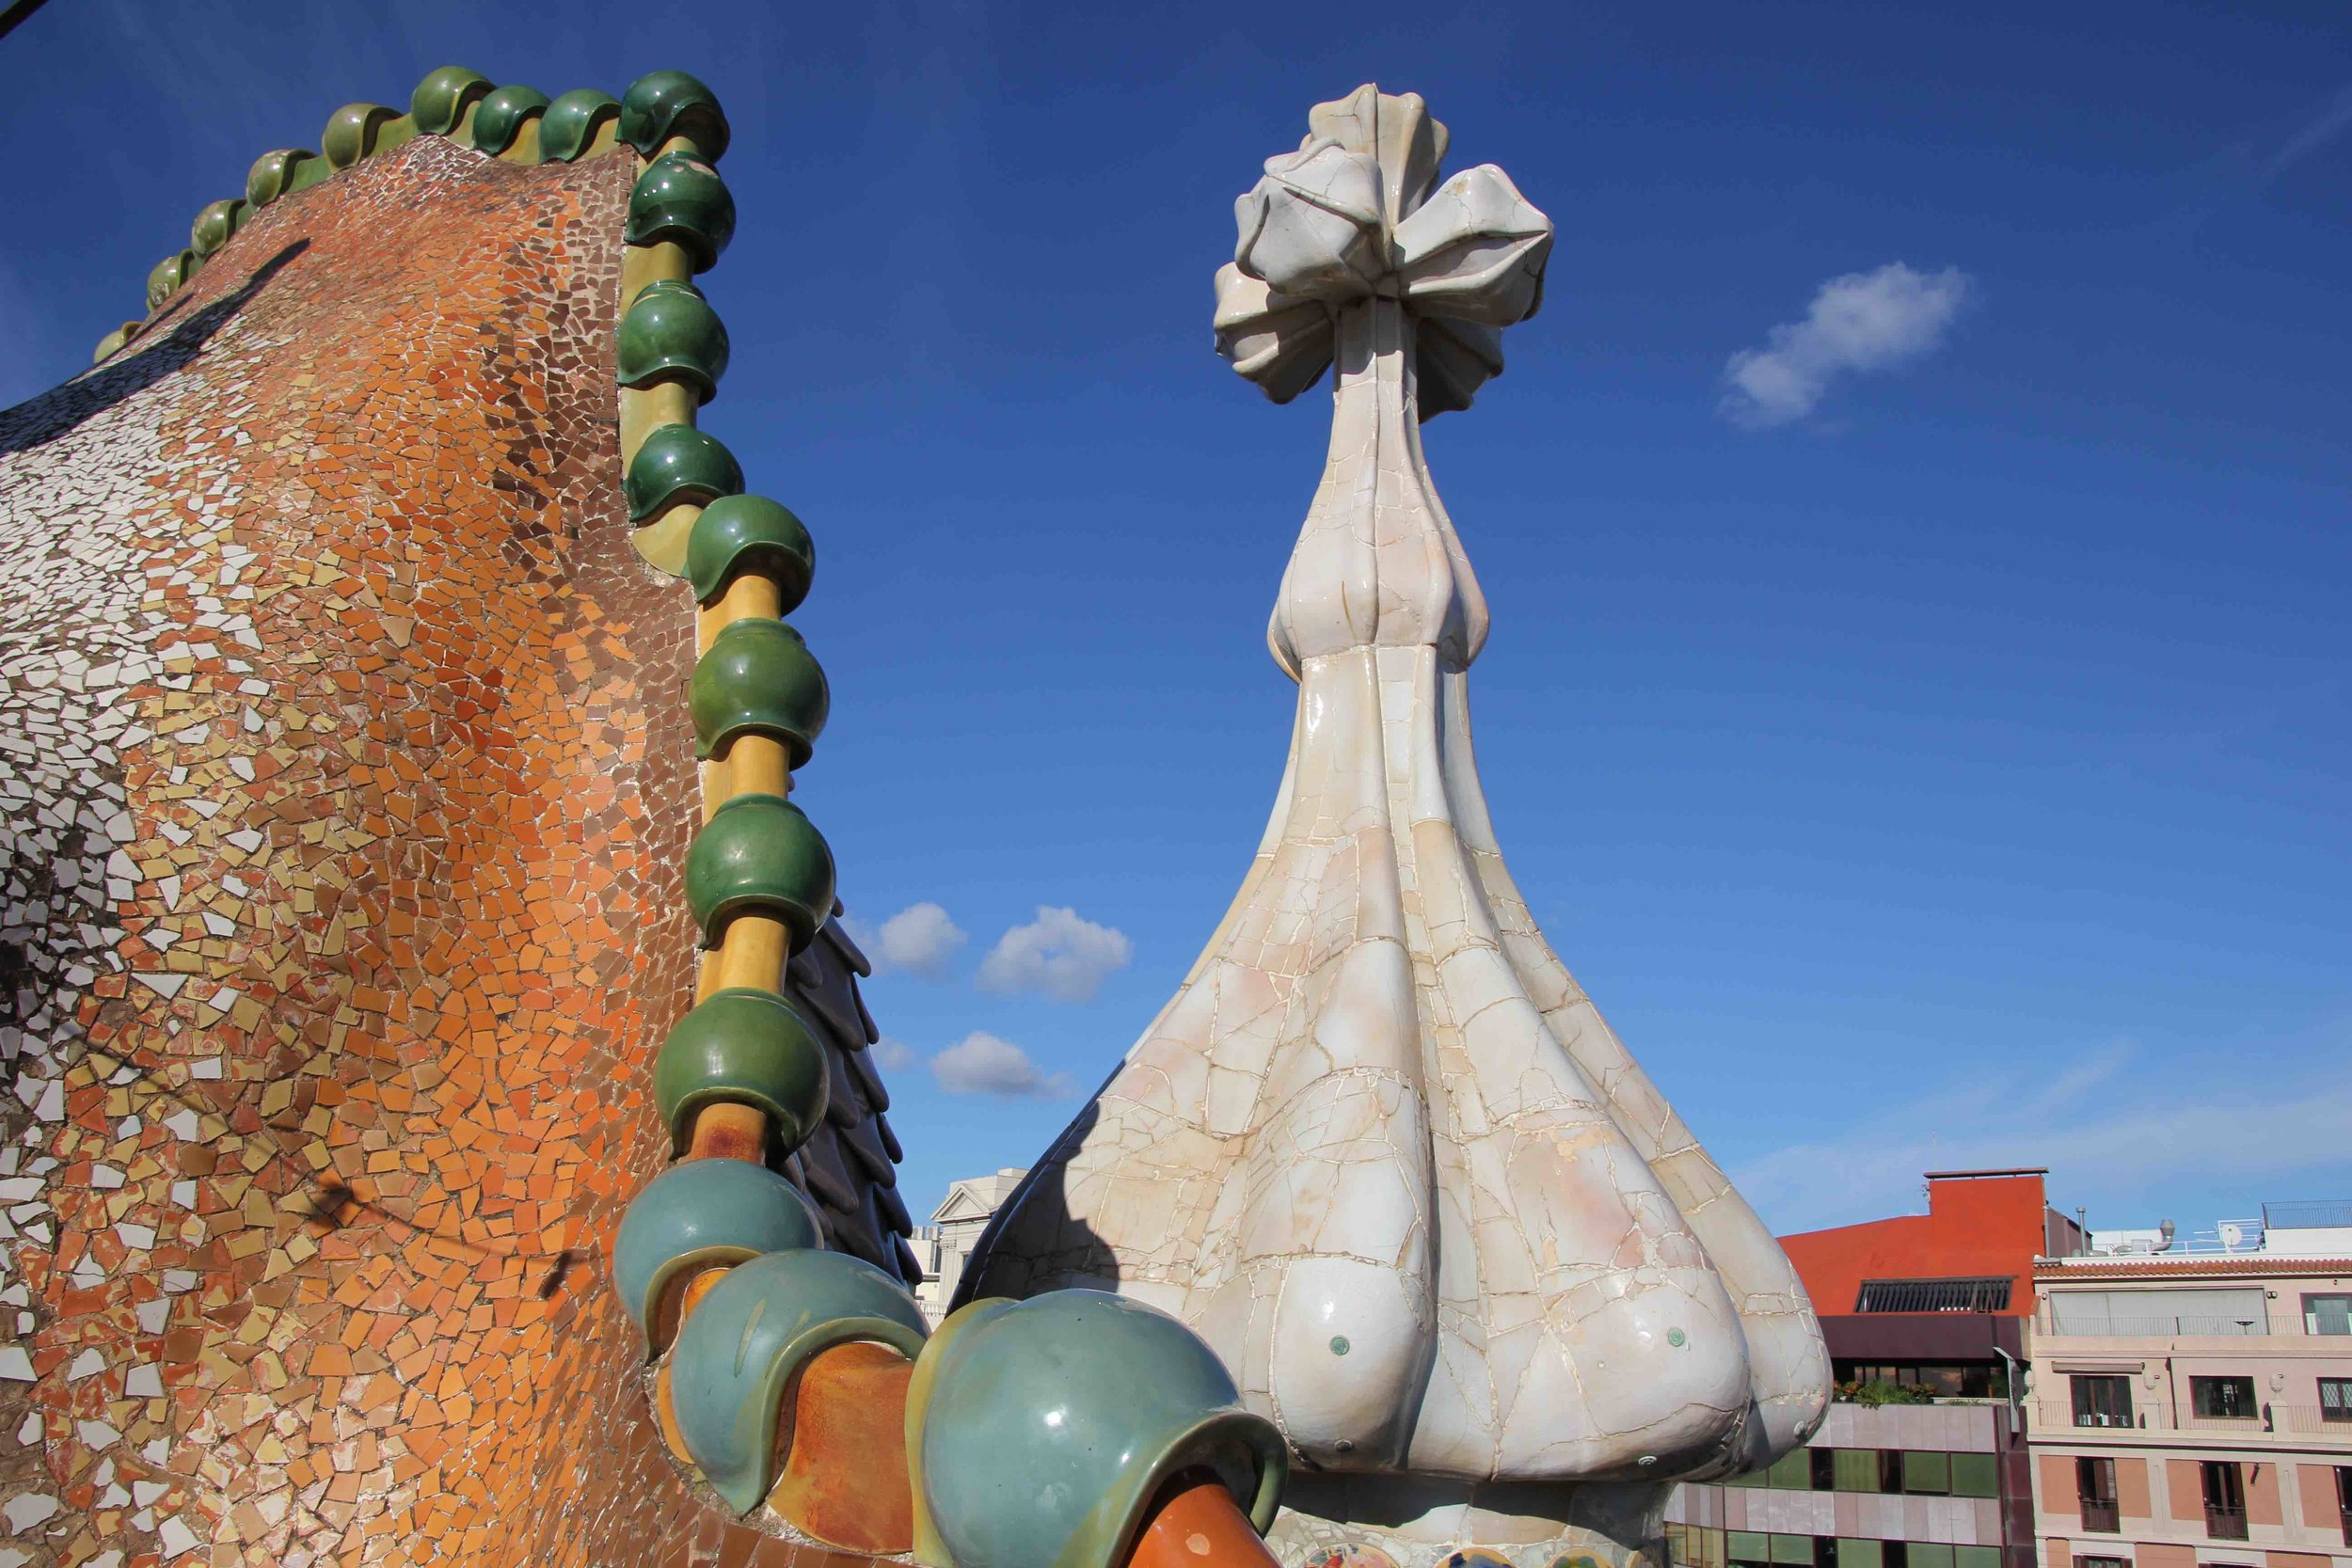 The hilt of St. Jordi's sword plunged into the dragon's back on the rooftop of Casa Battlo